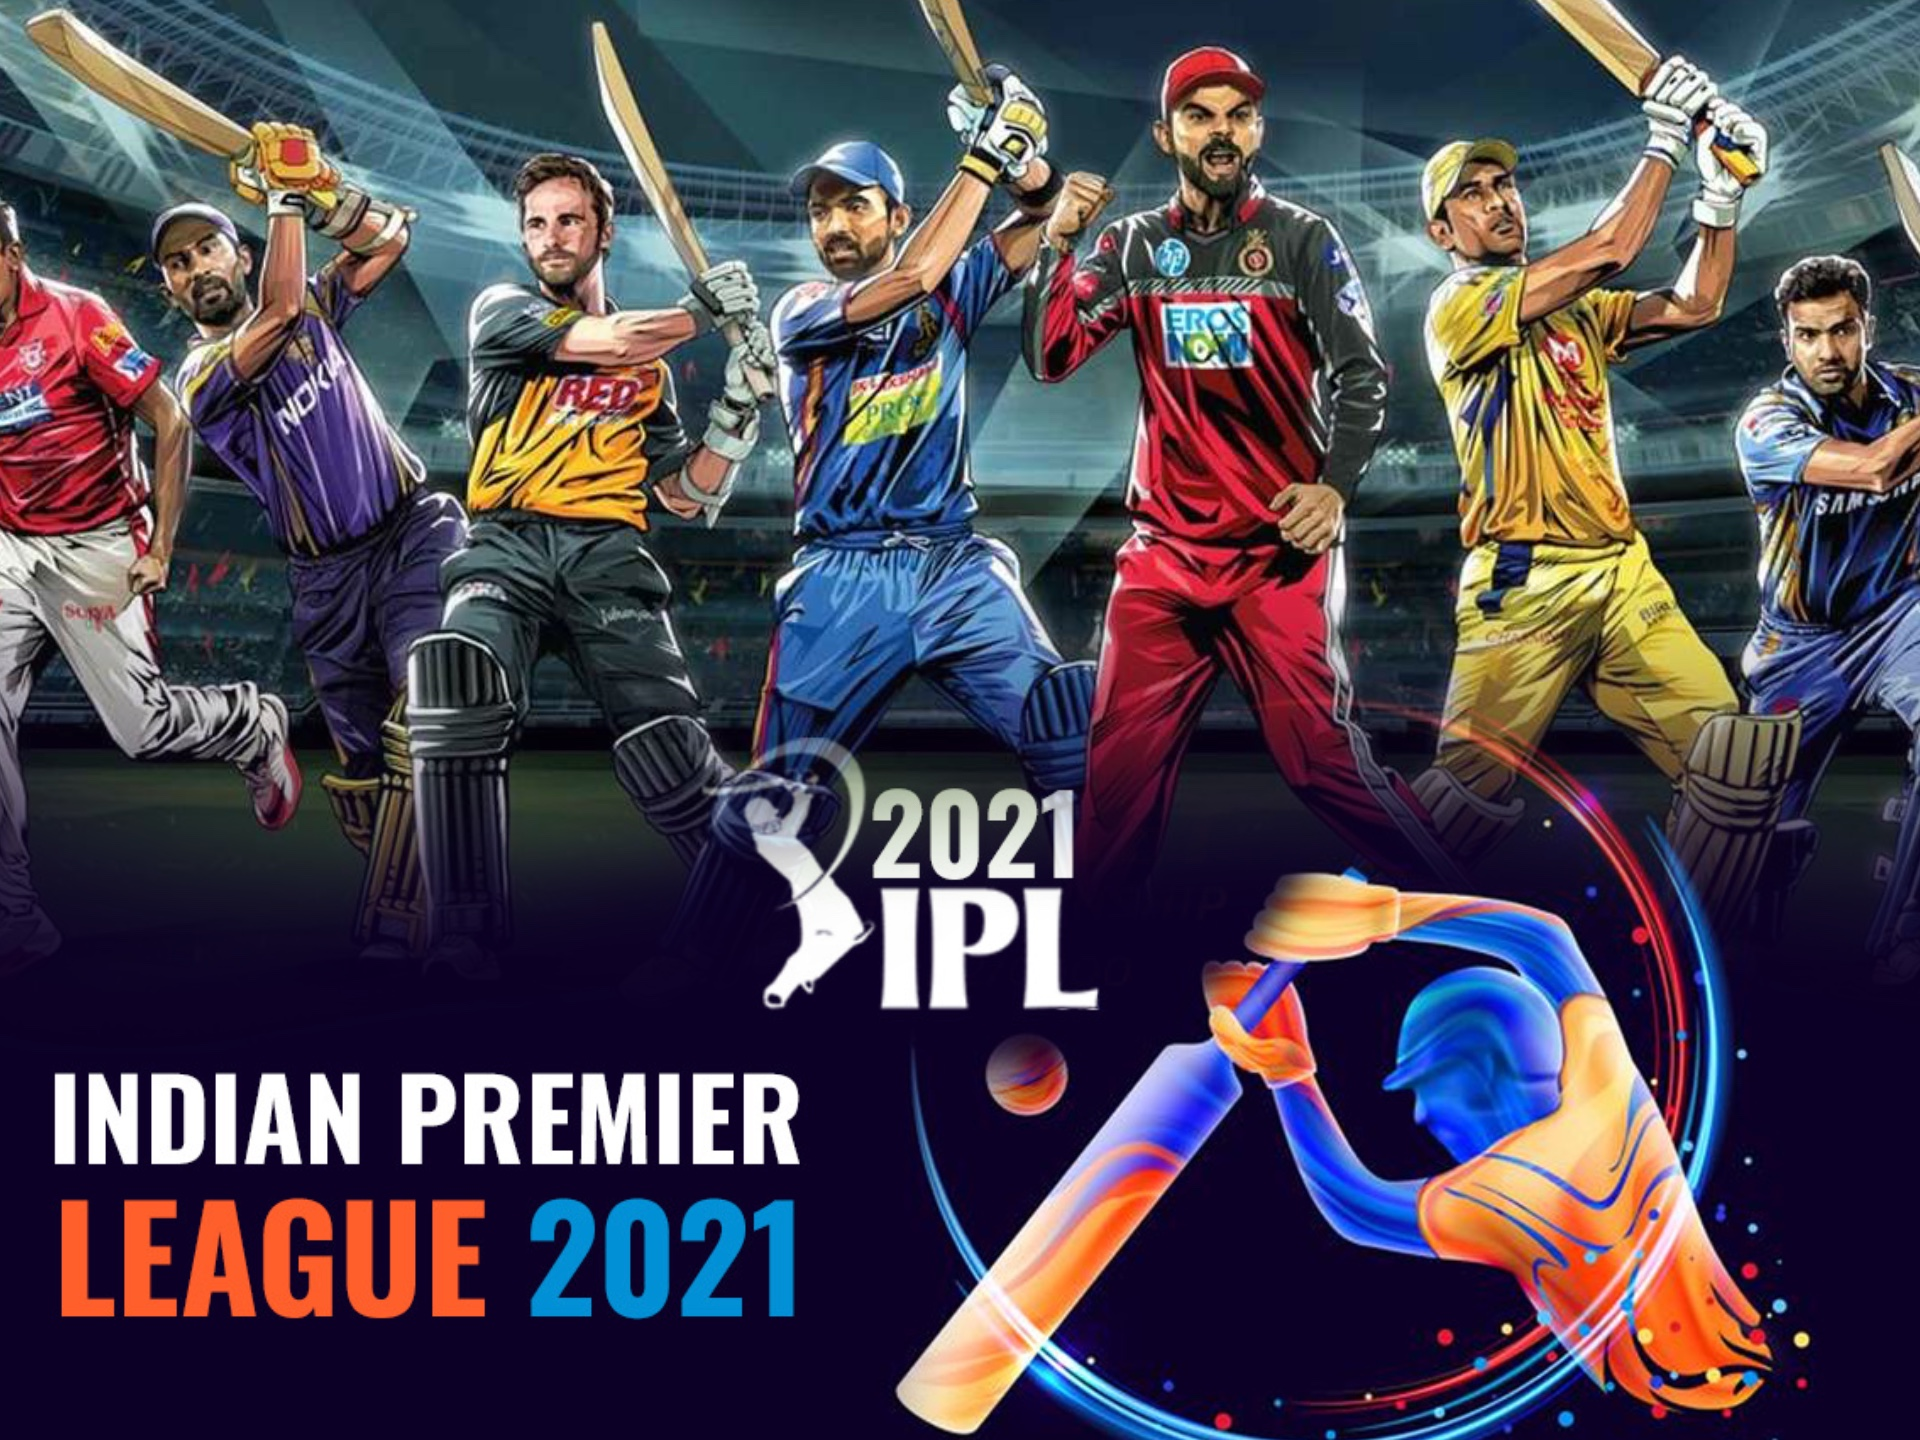 Watch IPL streamings at sportsbooks' sites and place profitable bets.